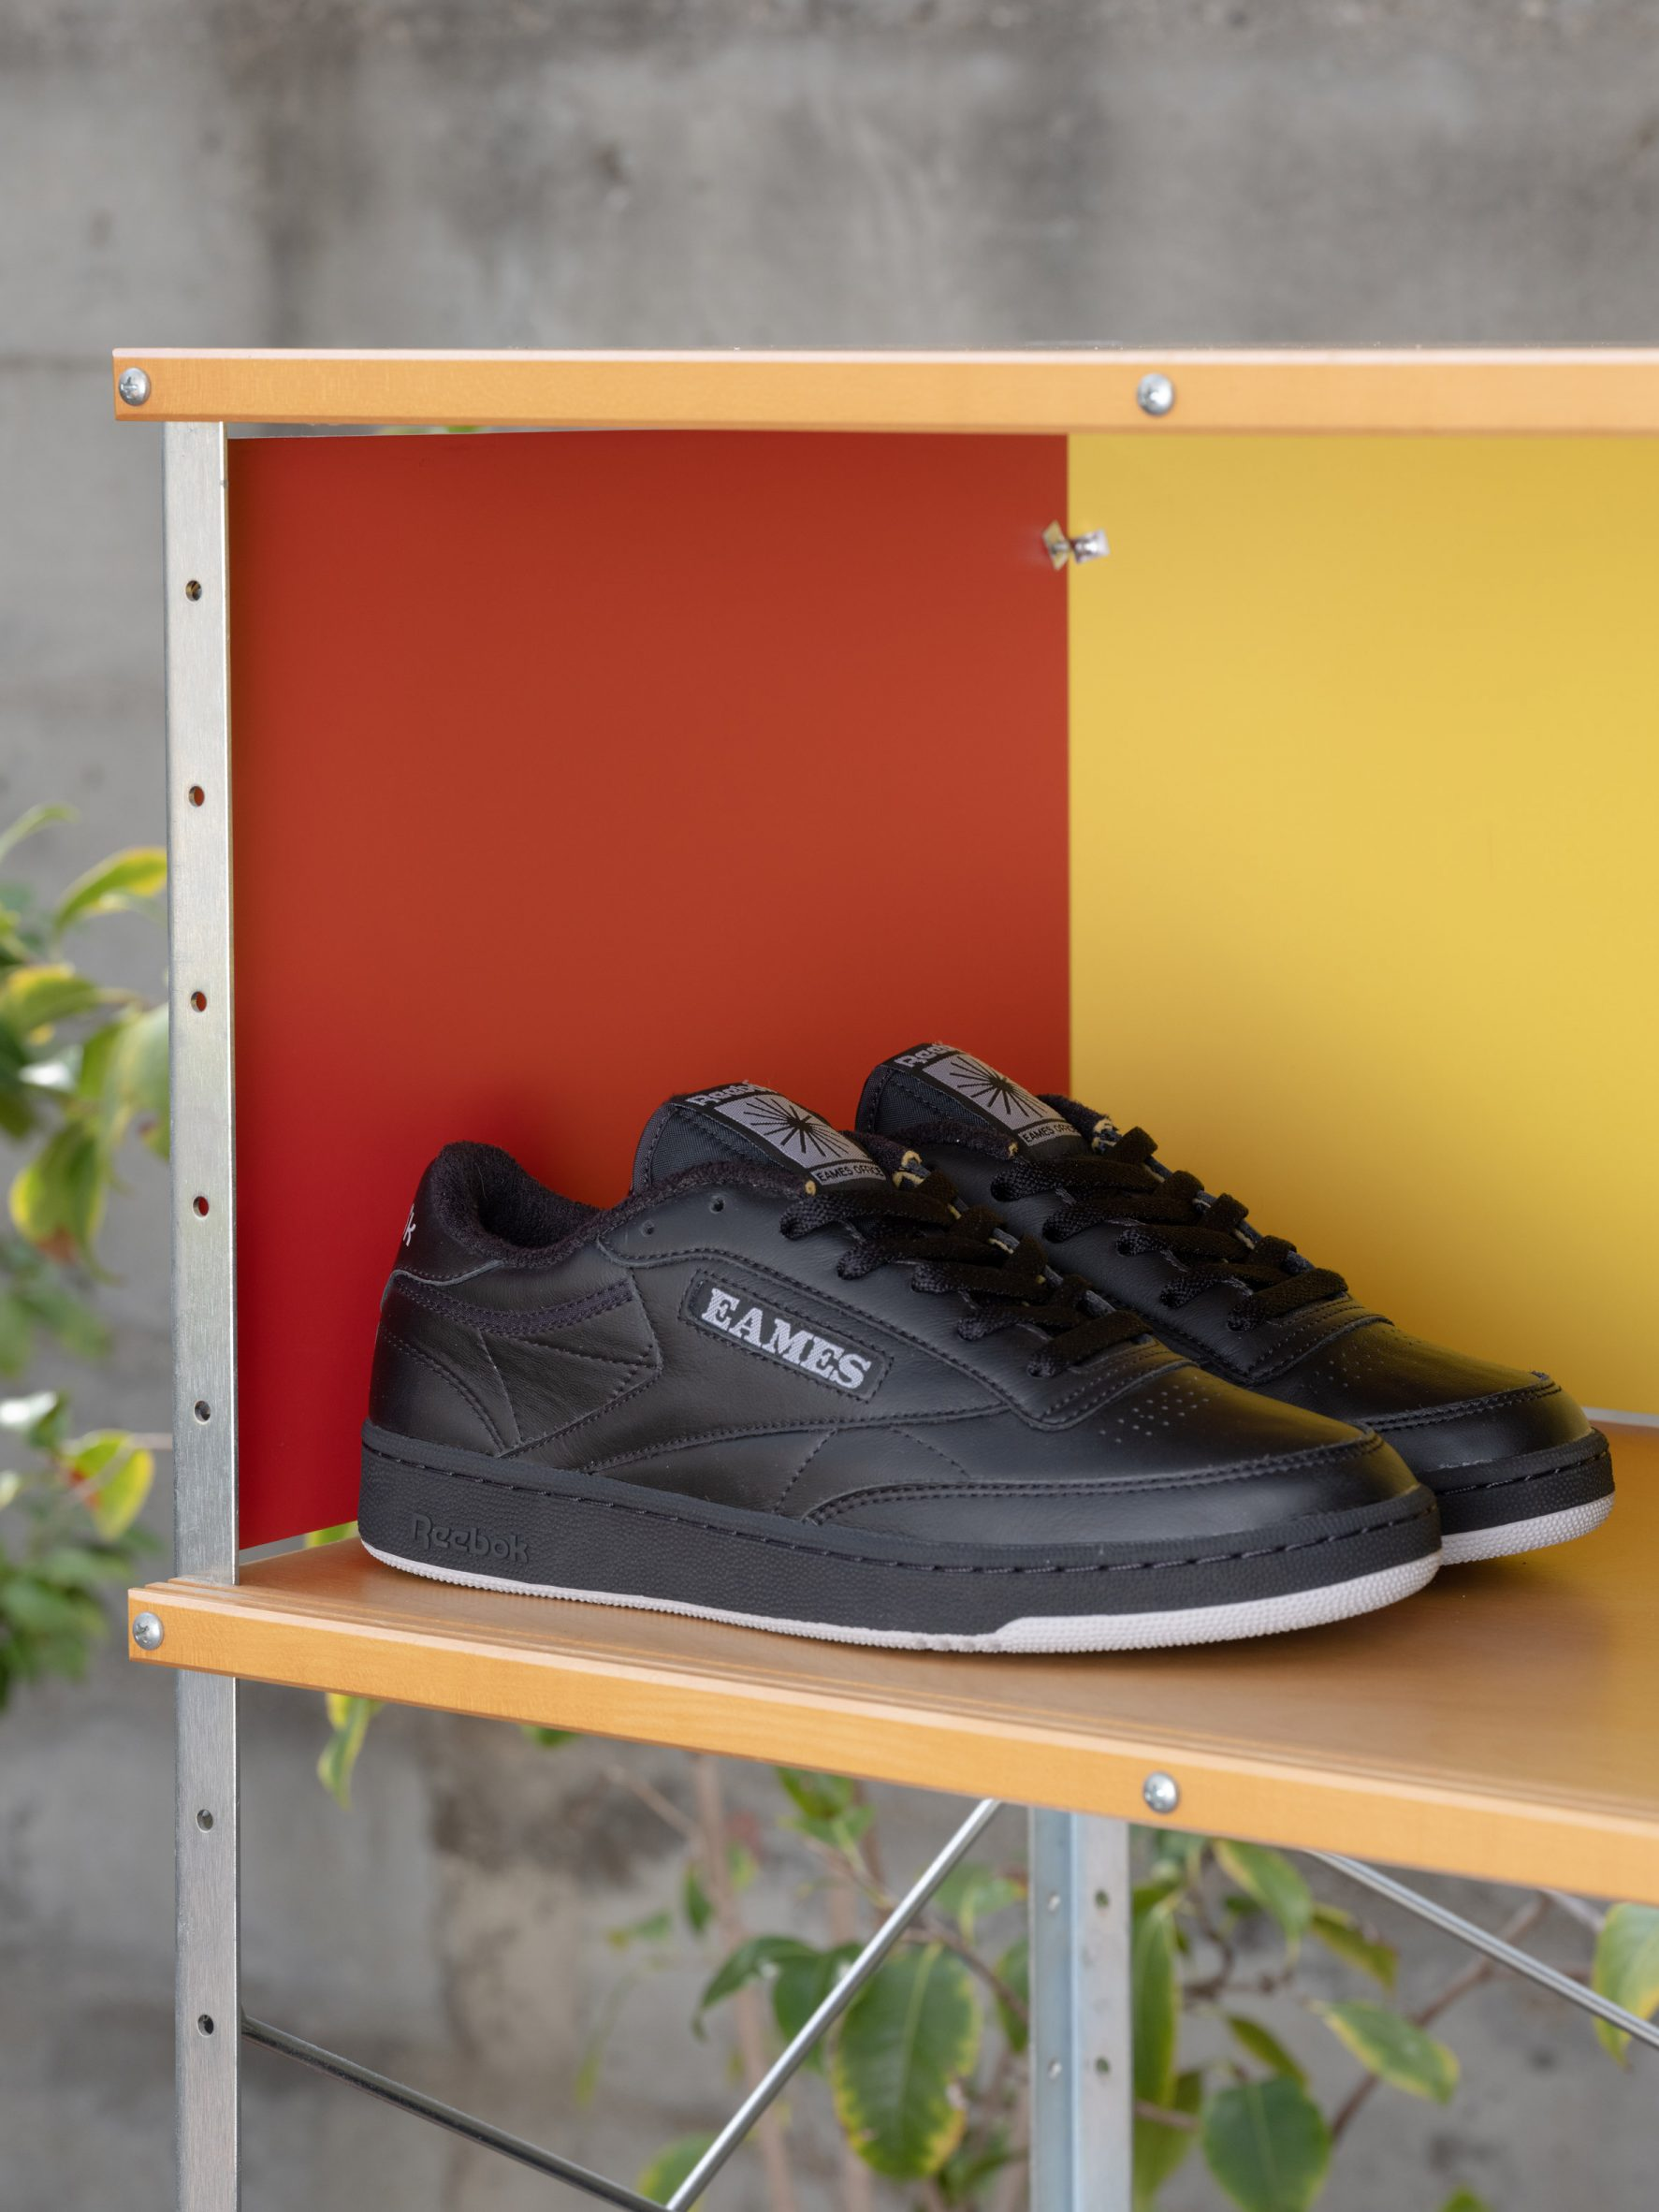 A pair of black Reebok trainers on a wooden shelf